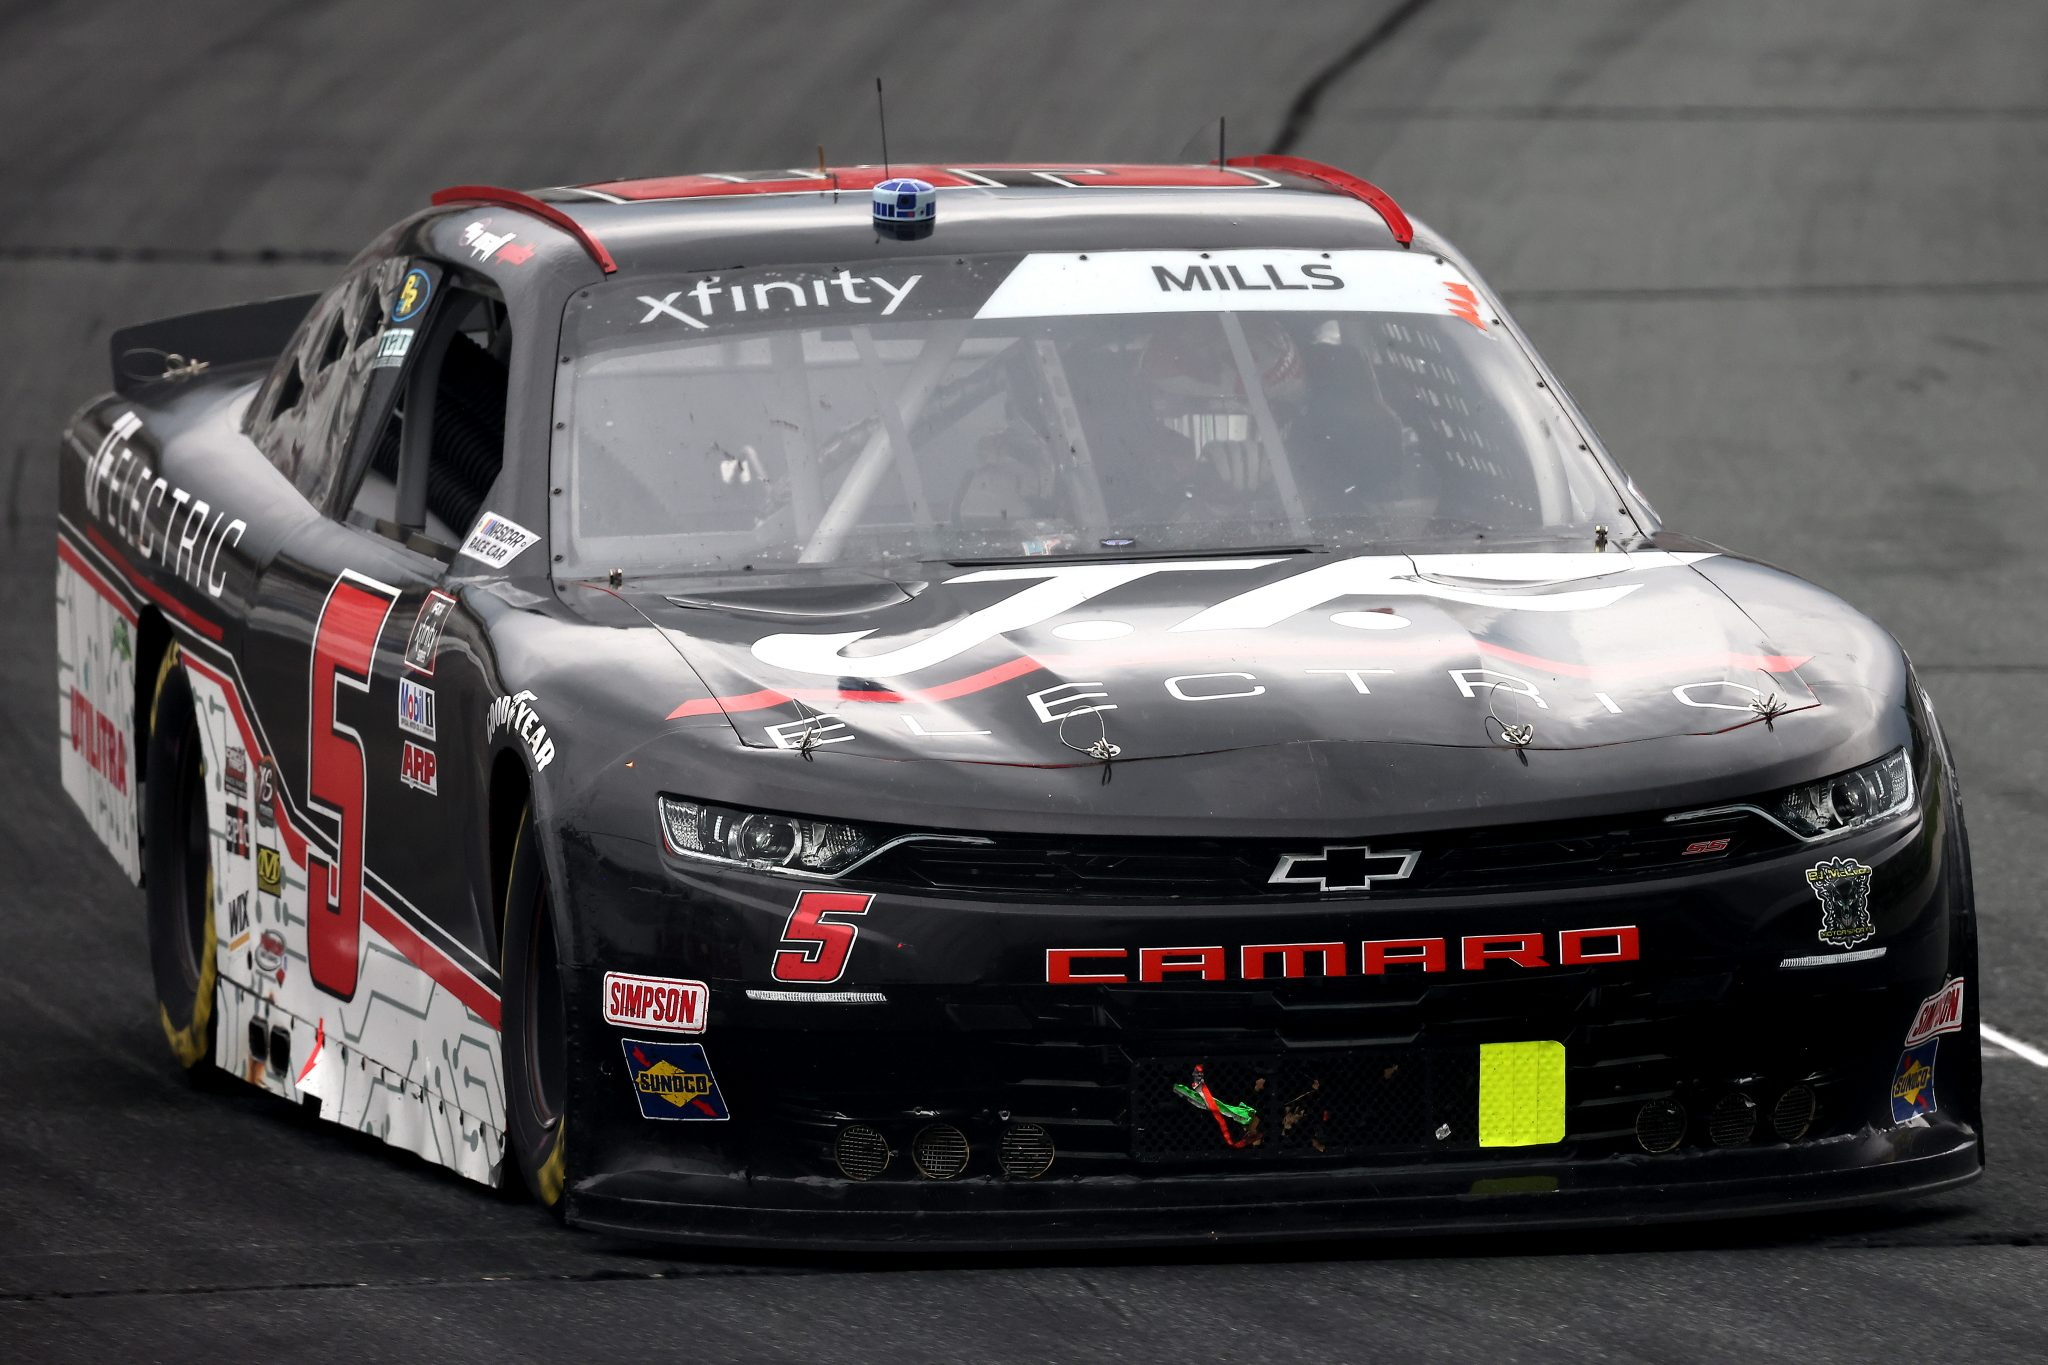 LOUDON, NEW HAMPSHIRE - JULY 17: Matt Mills, driver of the #5 JF Electric Chevrolet, drives during the NASCAR Xfinity Series Ambetter Get Vaccinated 200 at New Hampshire Motor Speedway on July 17, 2021 in Loudon, New Hampshire. (Photo by James Gilbert/Getty Images) | Getty Images